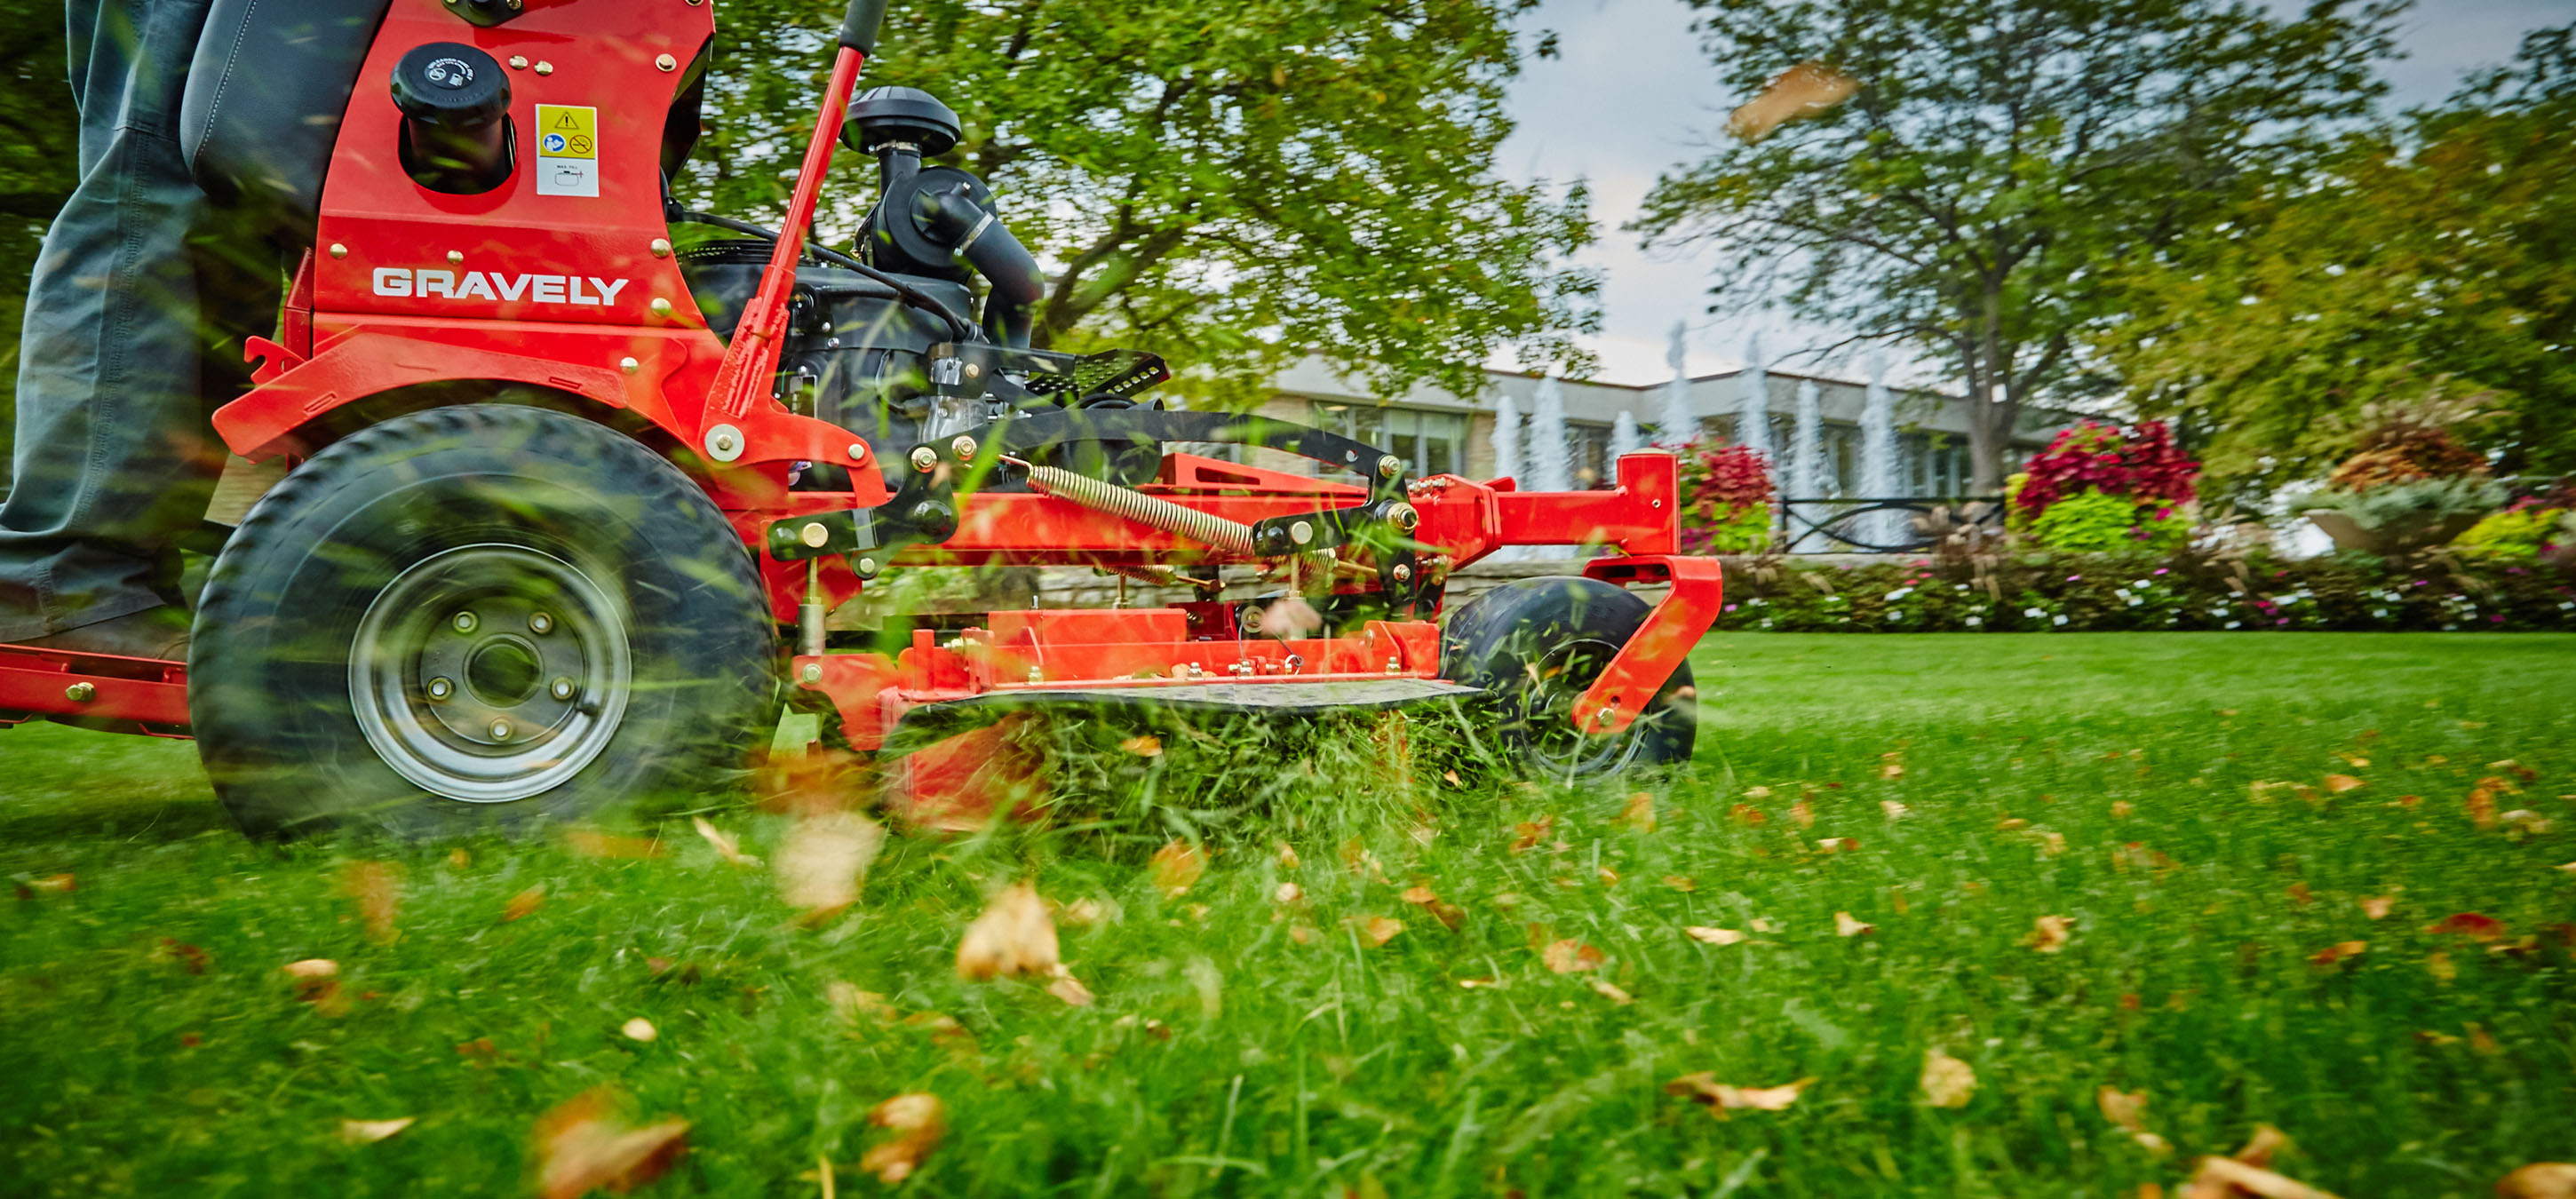 Gravely Pro Stance Mower Close Up in Lancaster, NH